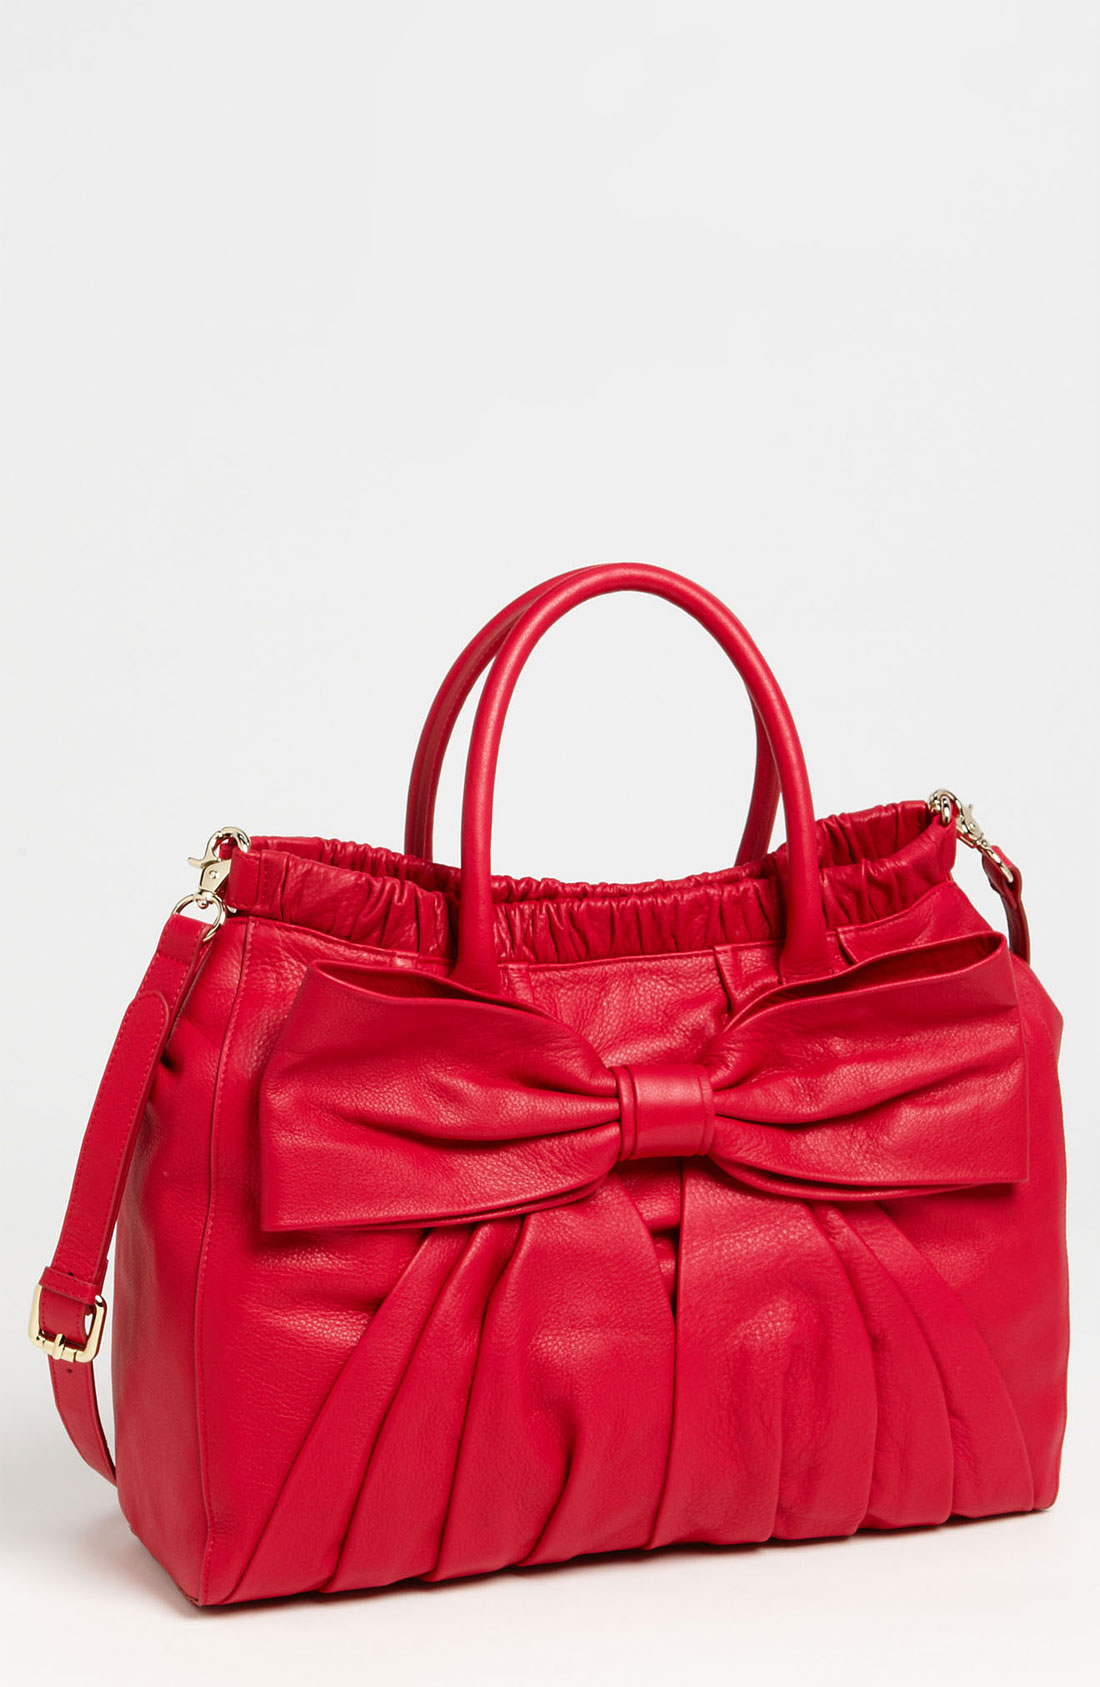 Bag At You Fashion Blog Hip E Bags White Backpack: Red Valentino Bow Top Handle Bag In Red (cherry)